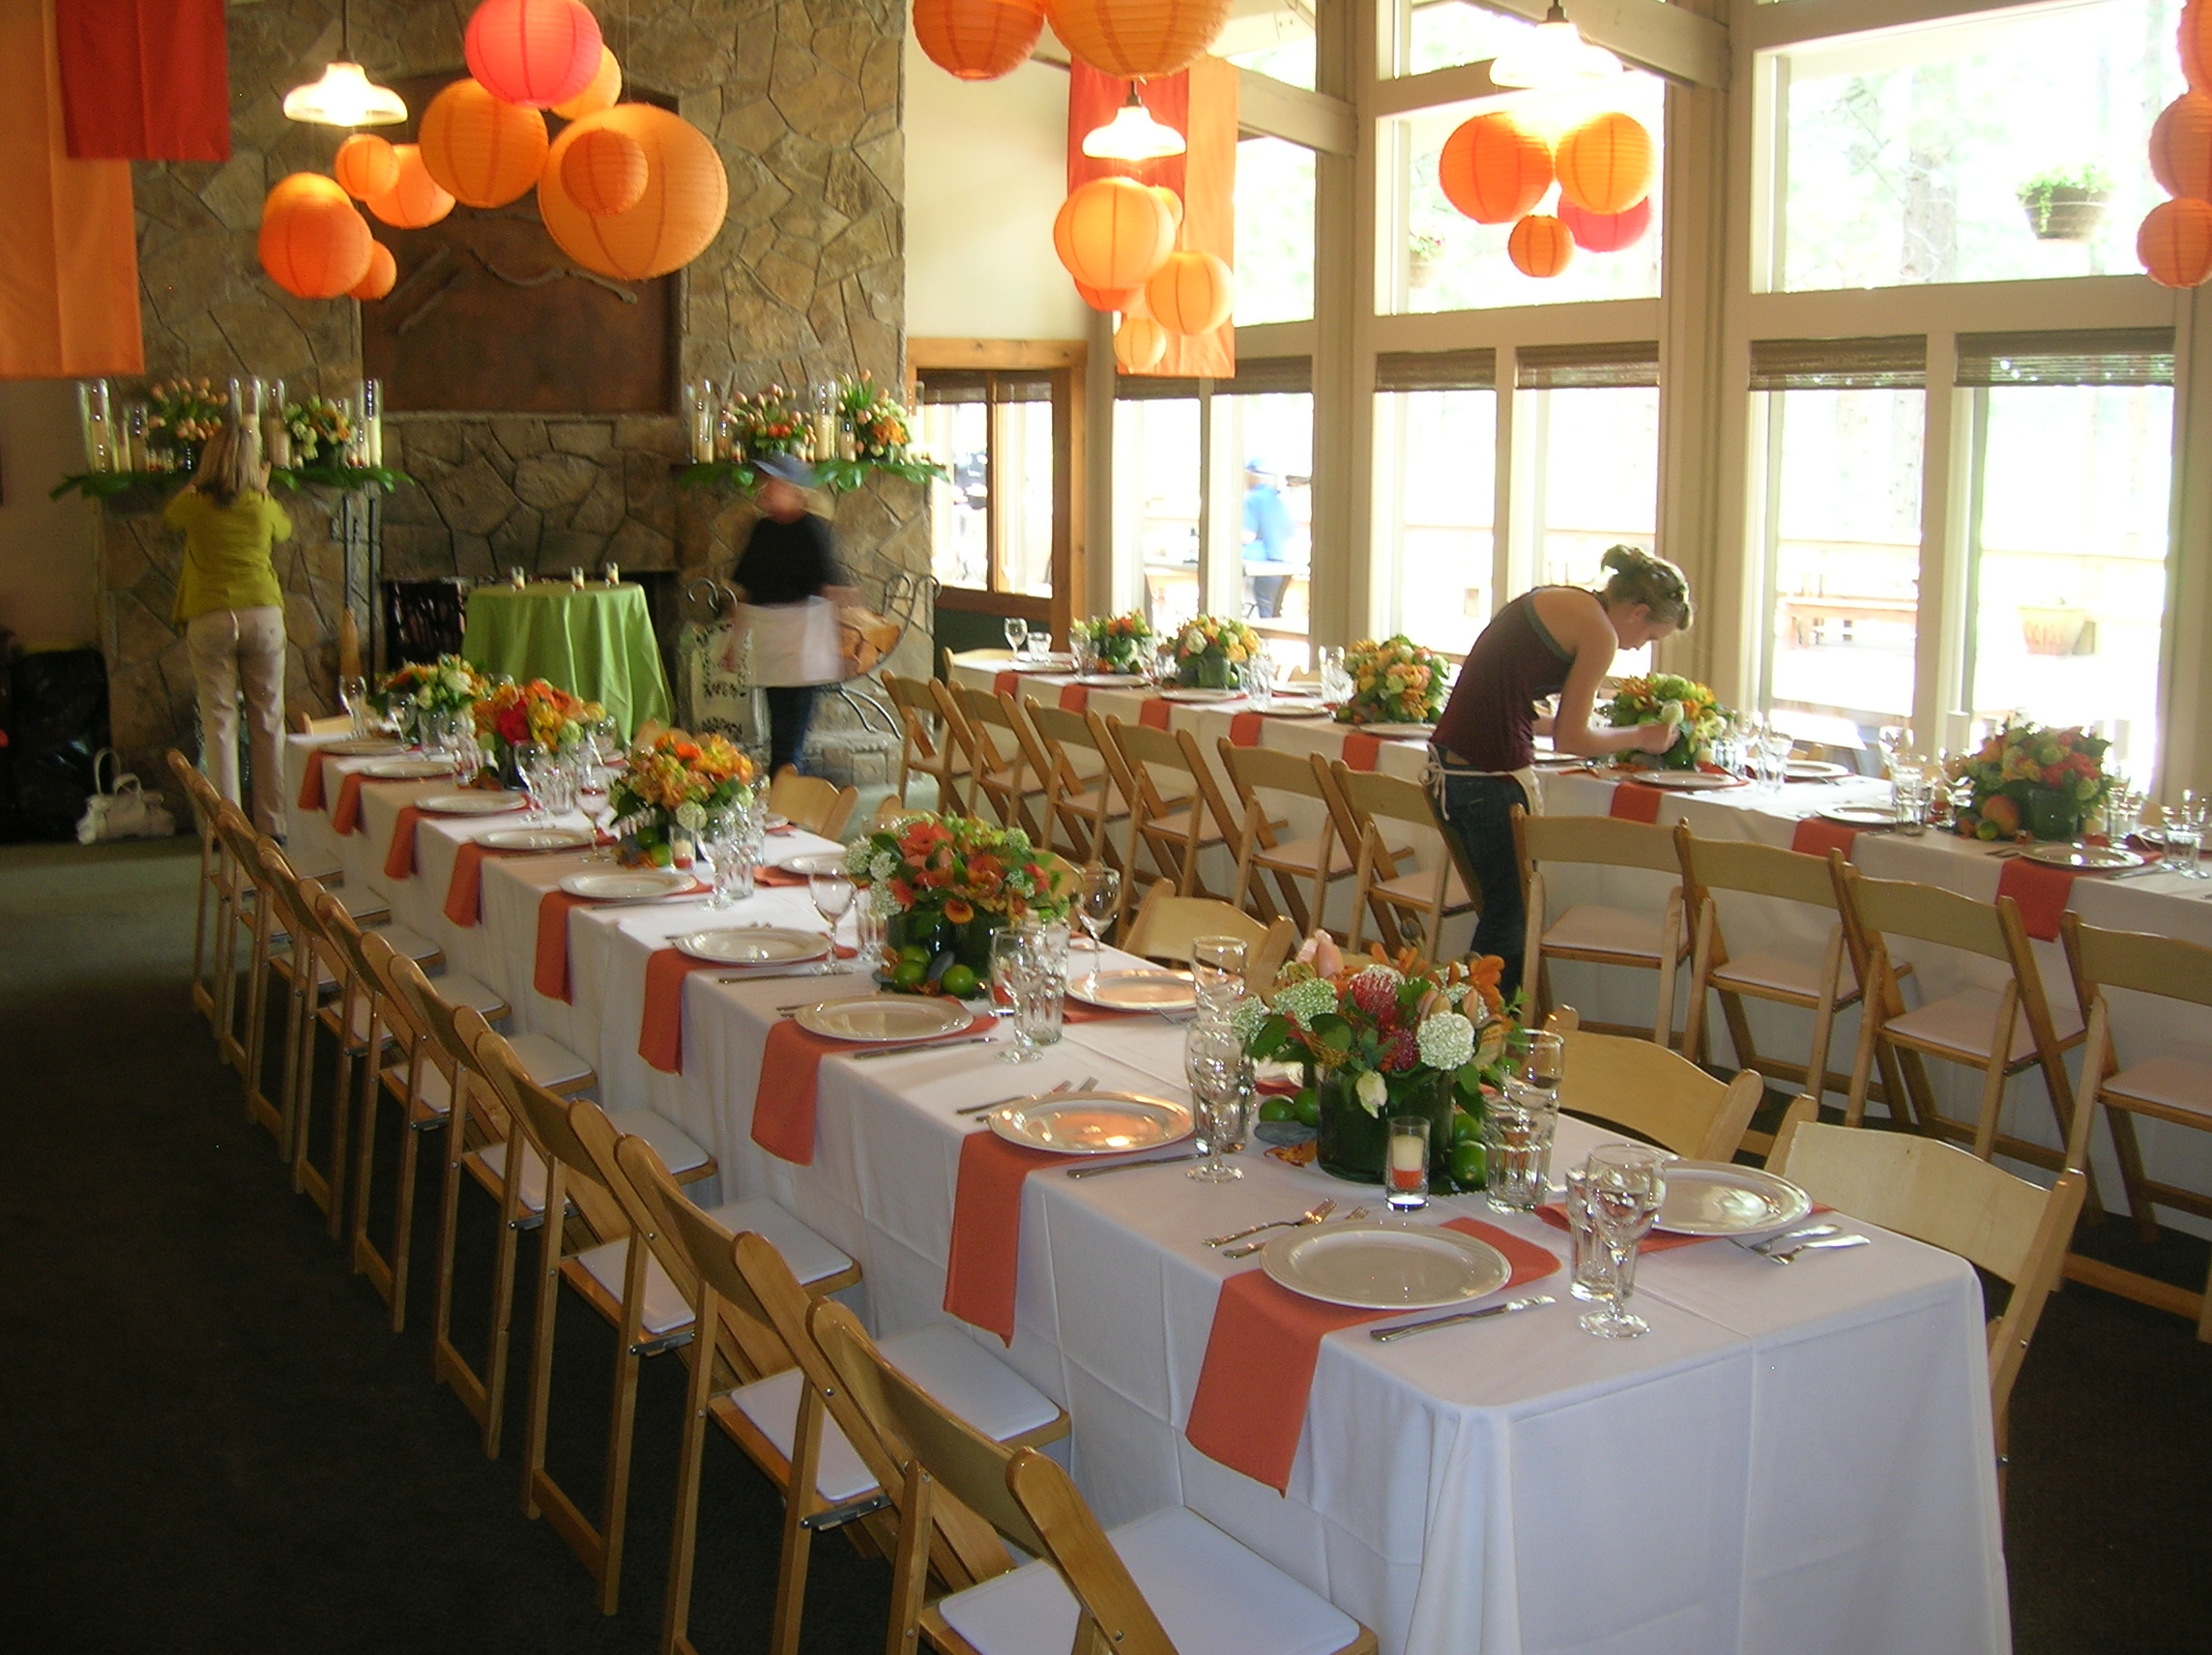 Event rentals bend oregon central event rentals serving all of